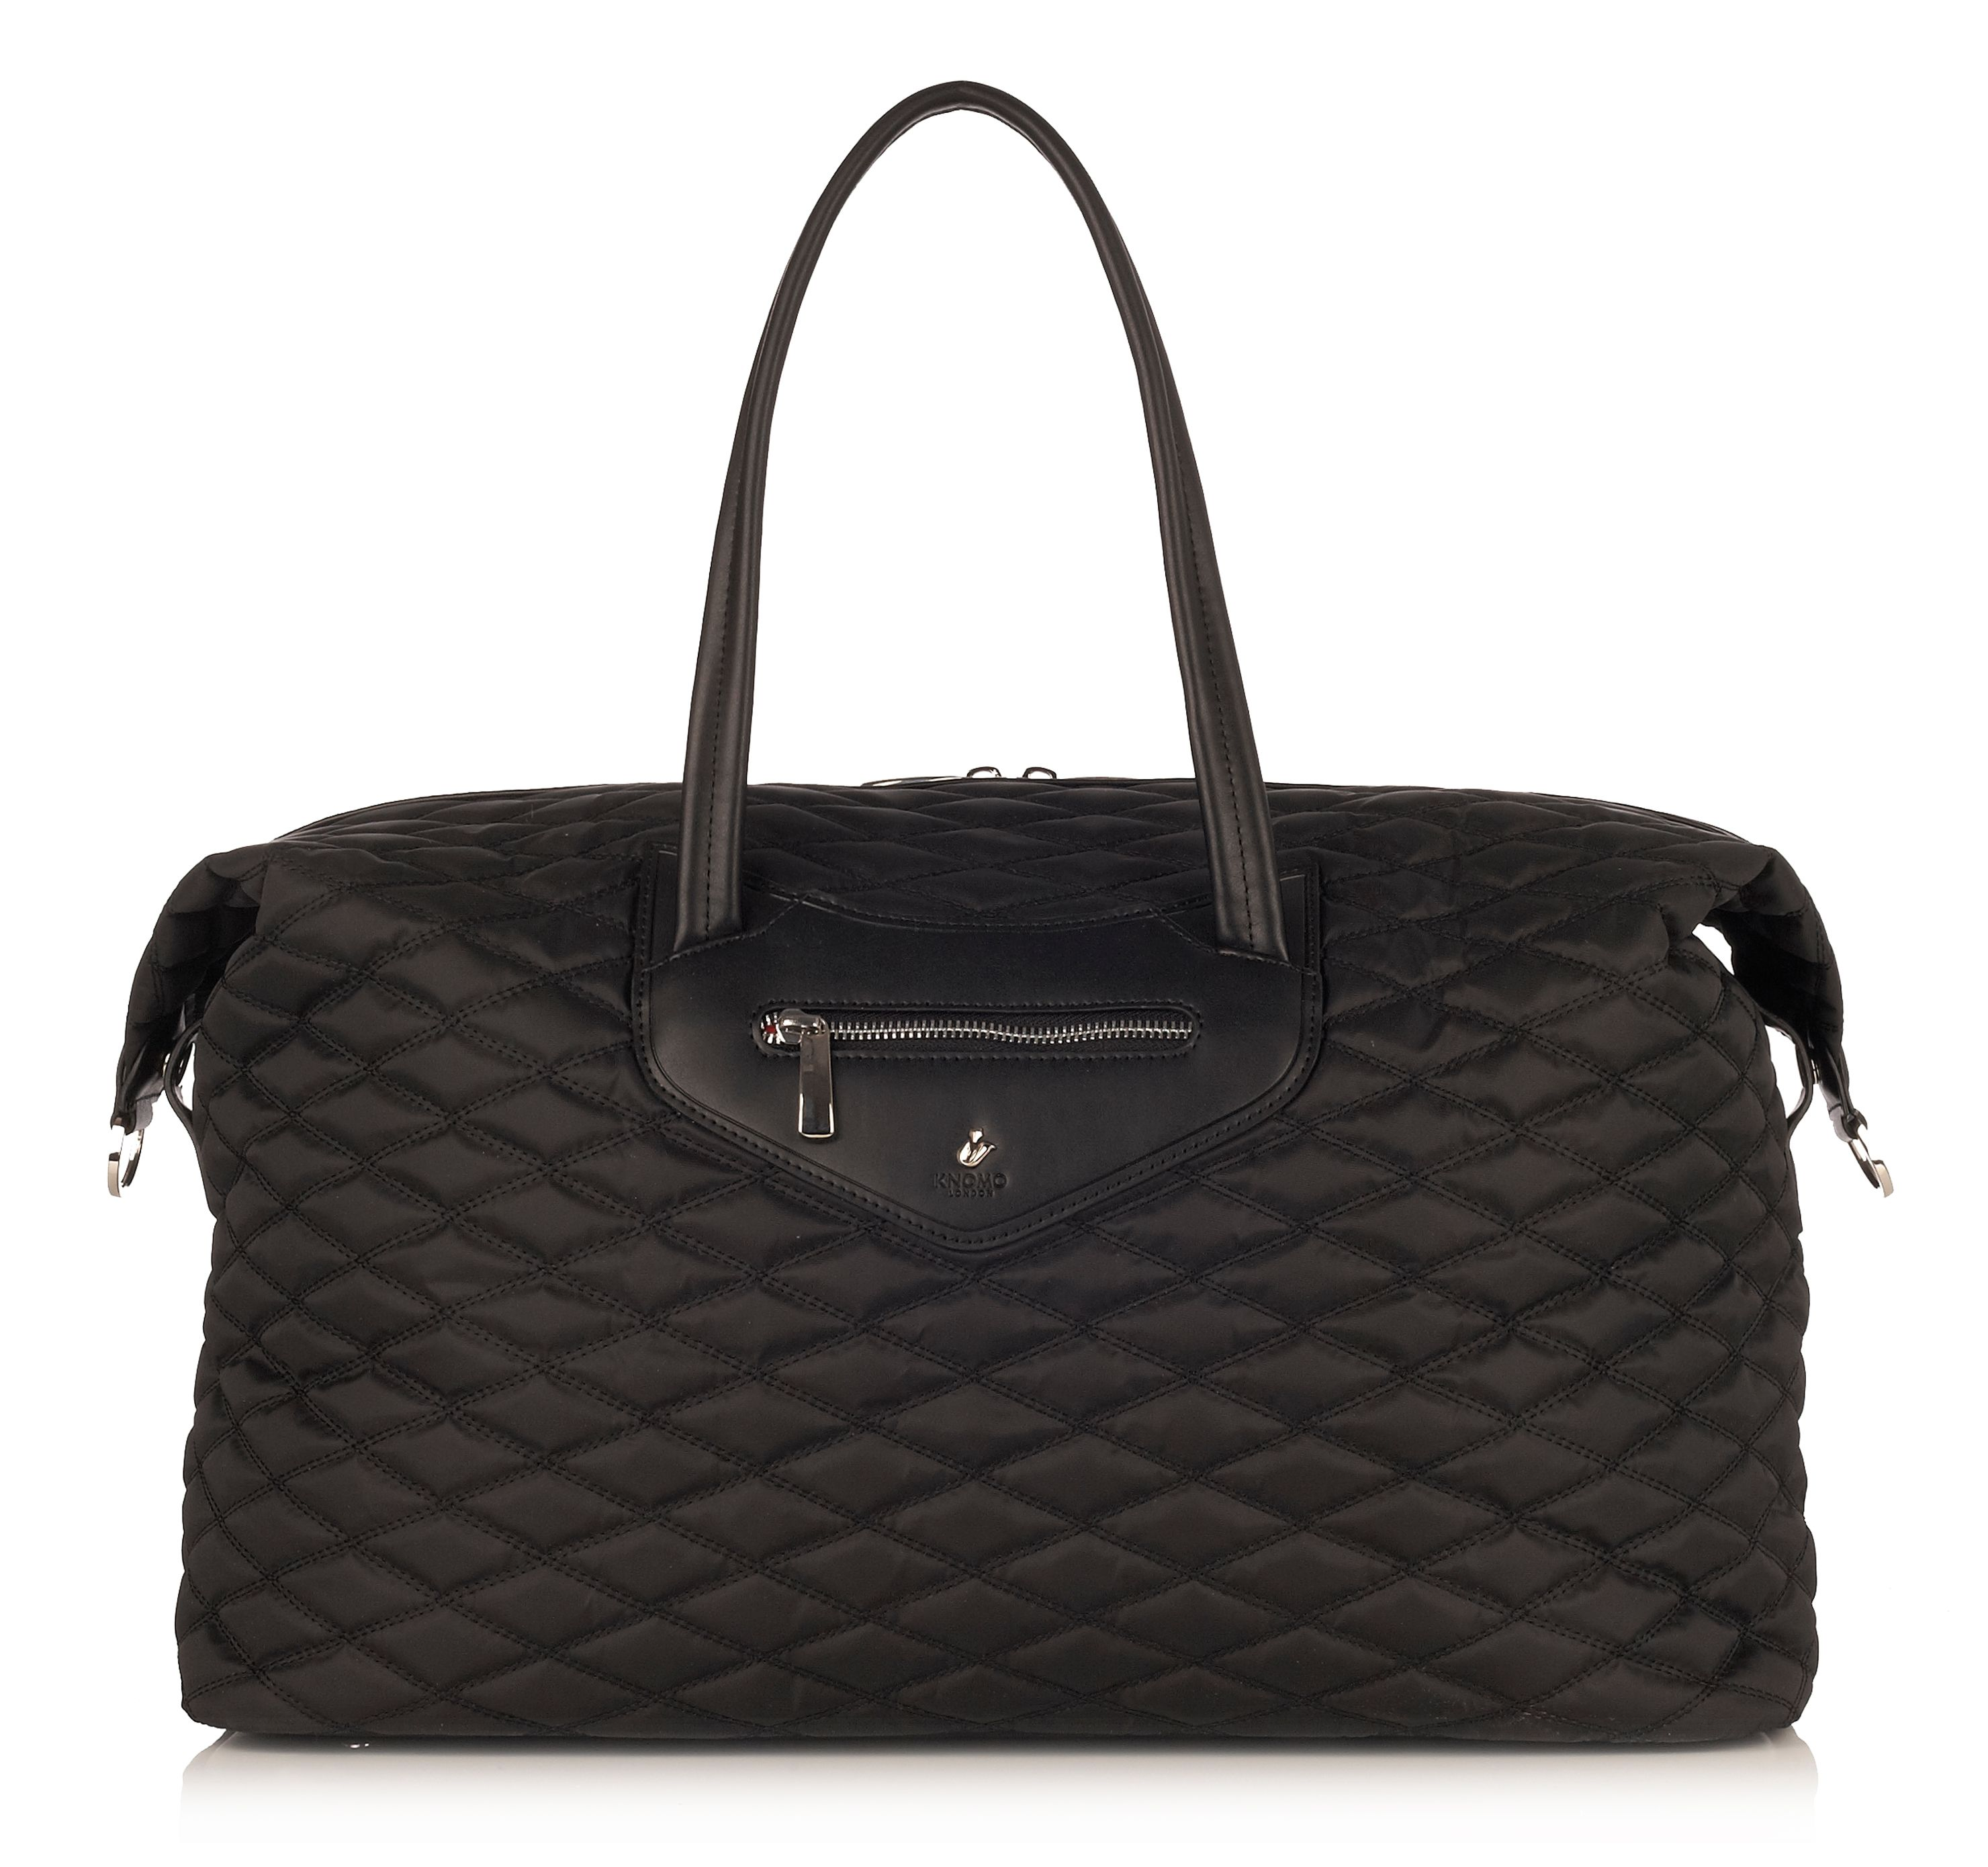 Huntley black weekender bag